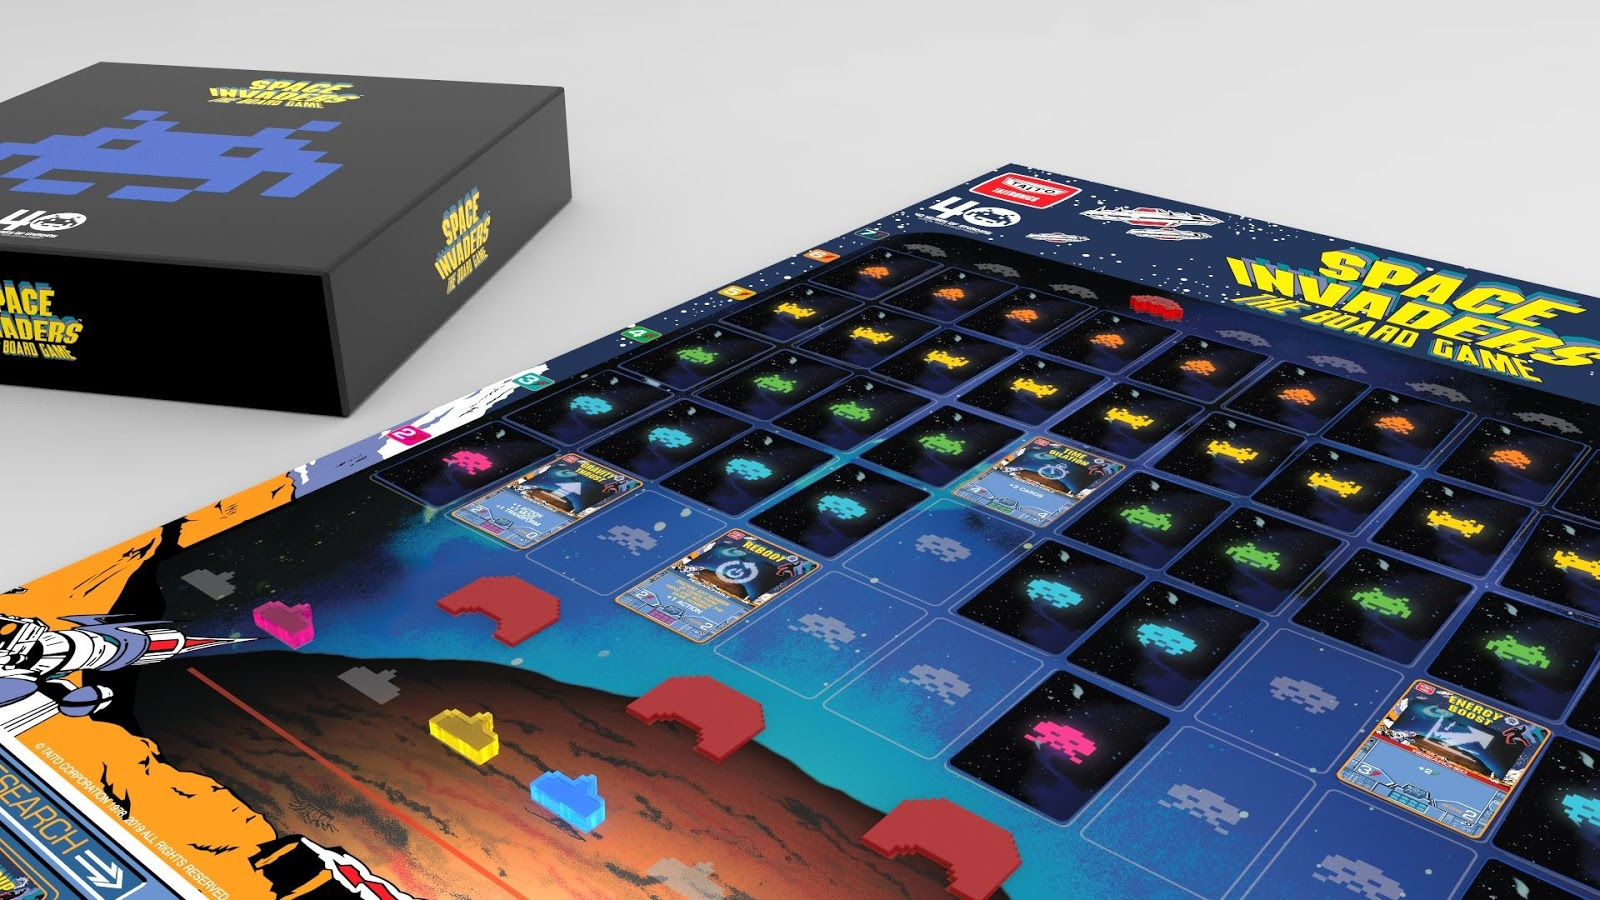 Kickstarter Highlights SPACE INVADERS 40th Anniversary